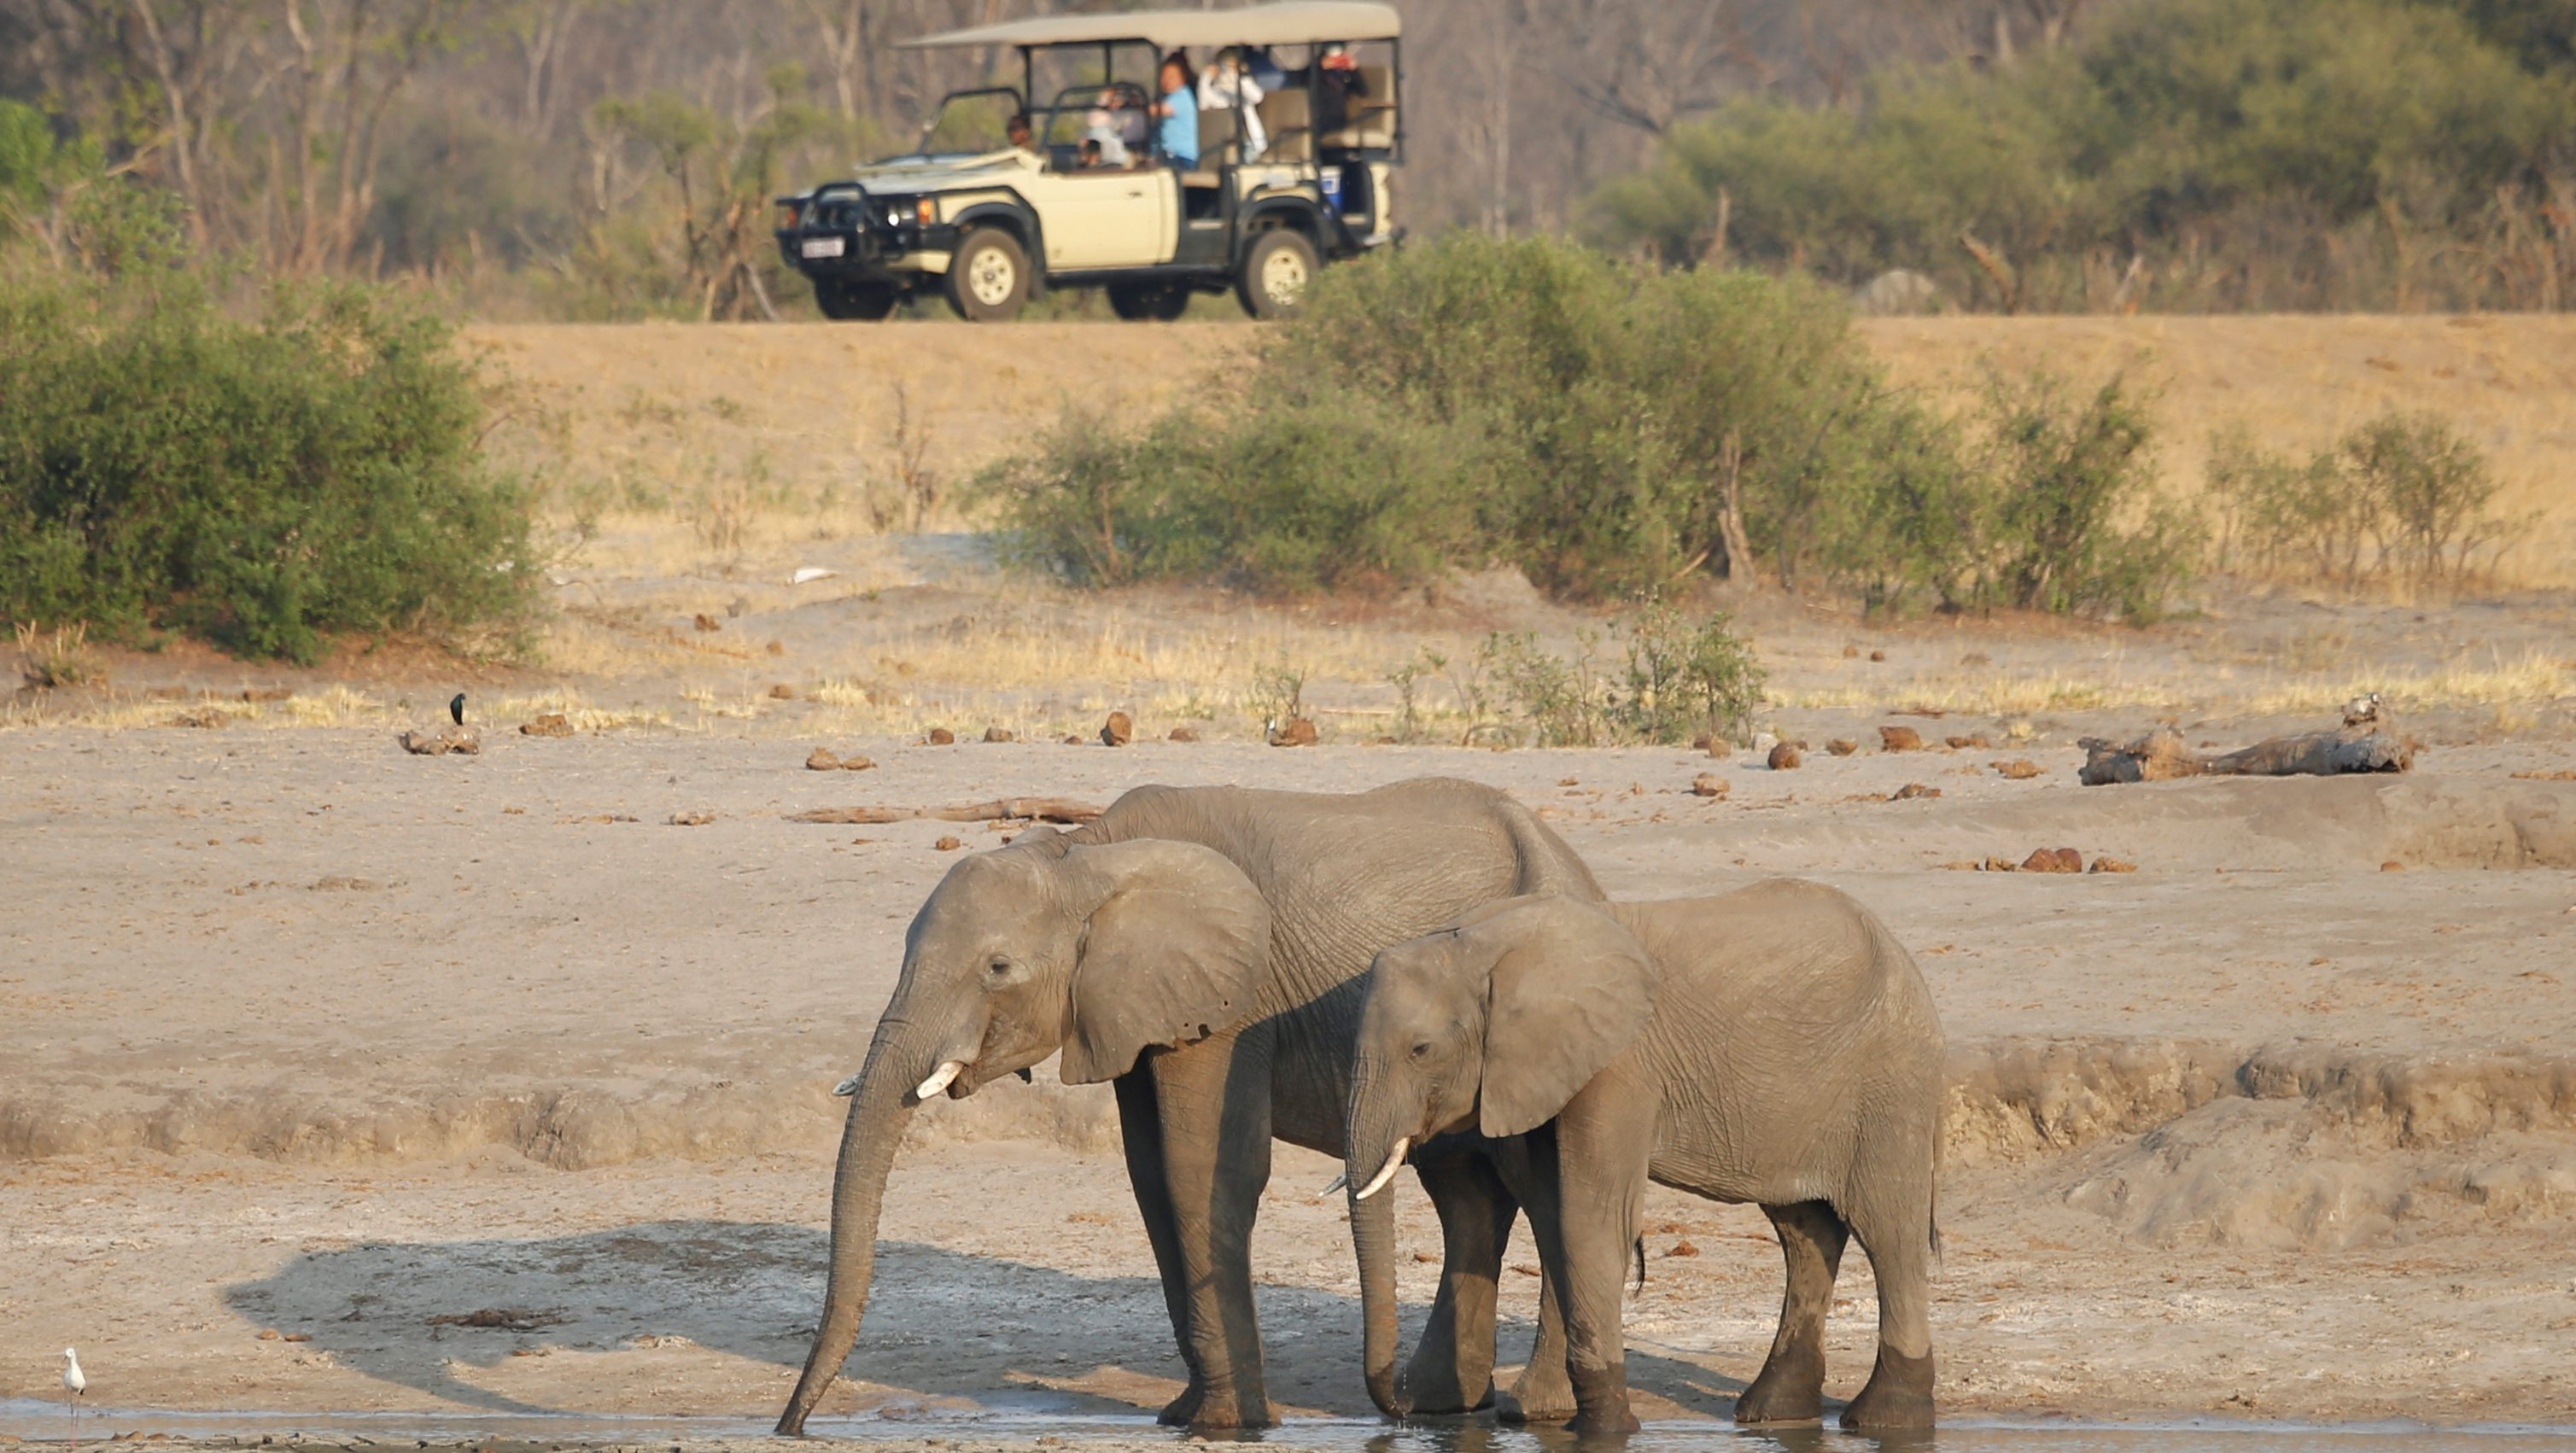 Tourists look at a group of elephants at Zimbabwe's Hwange National Park.